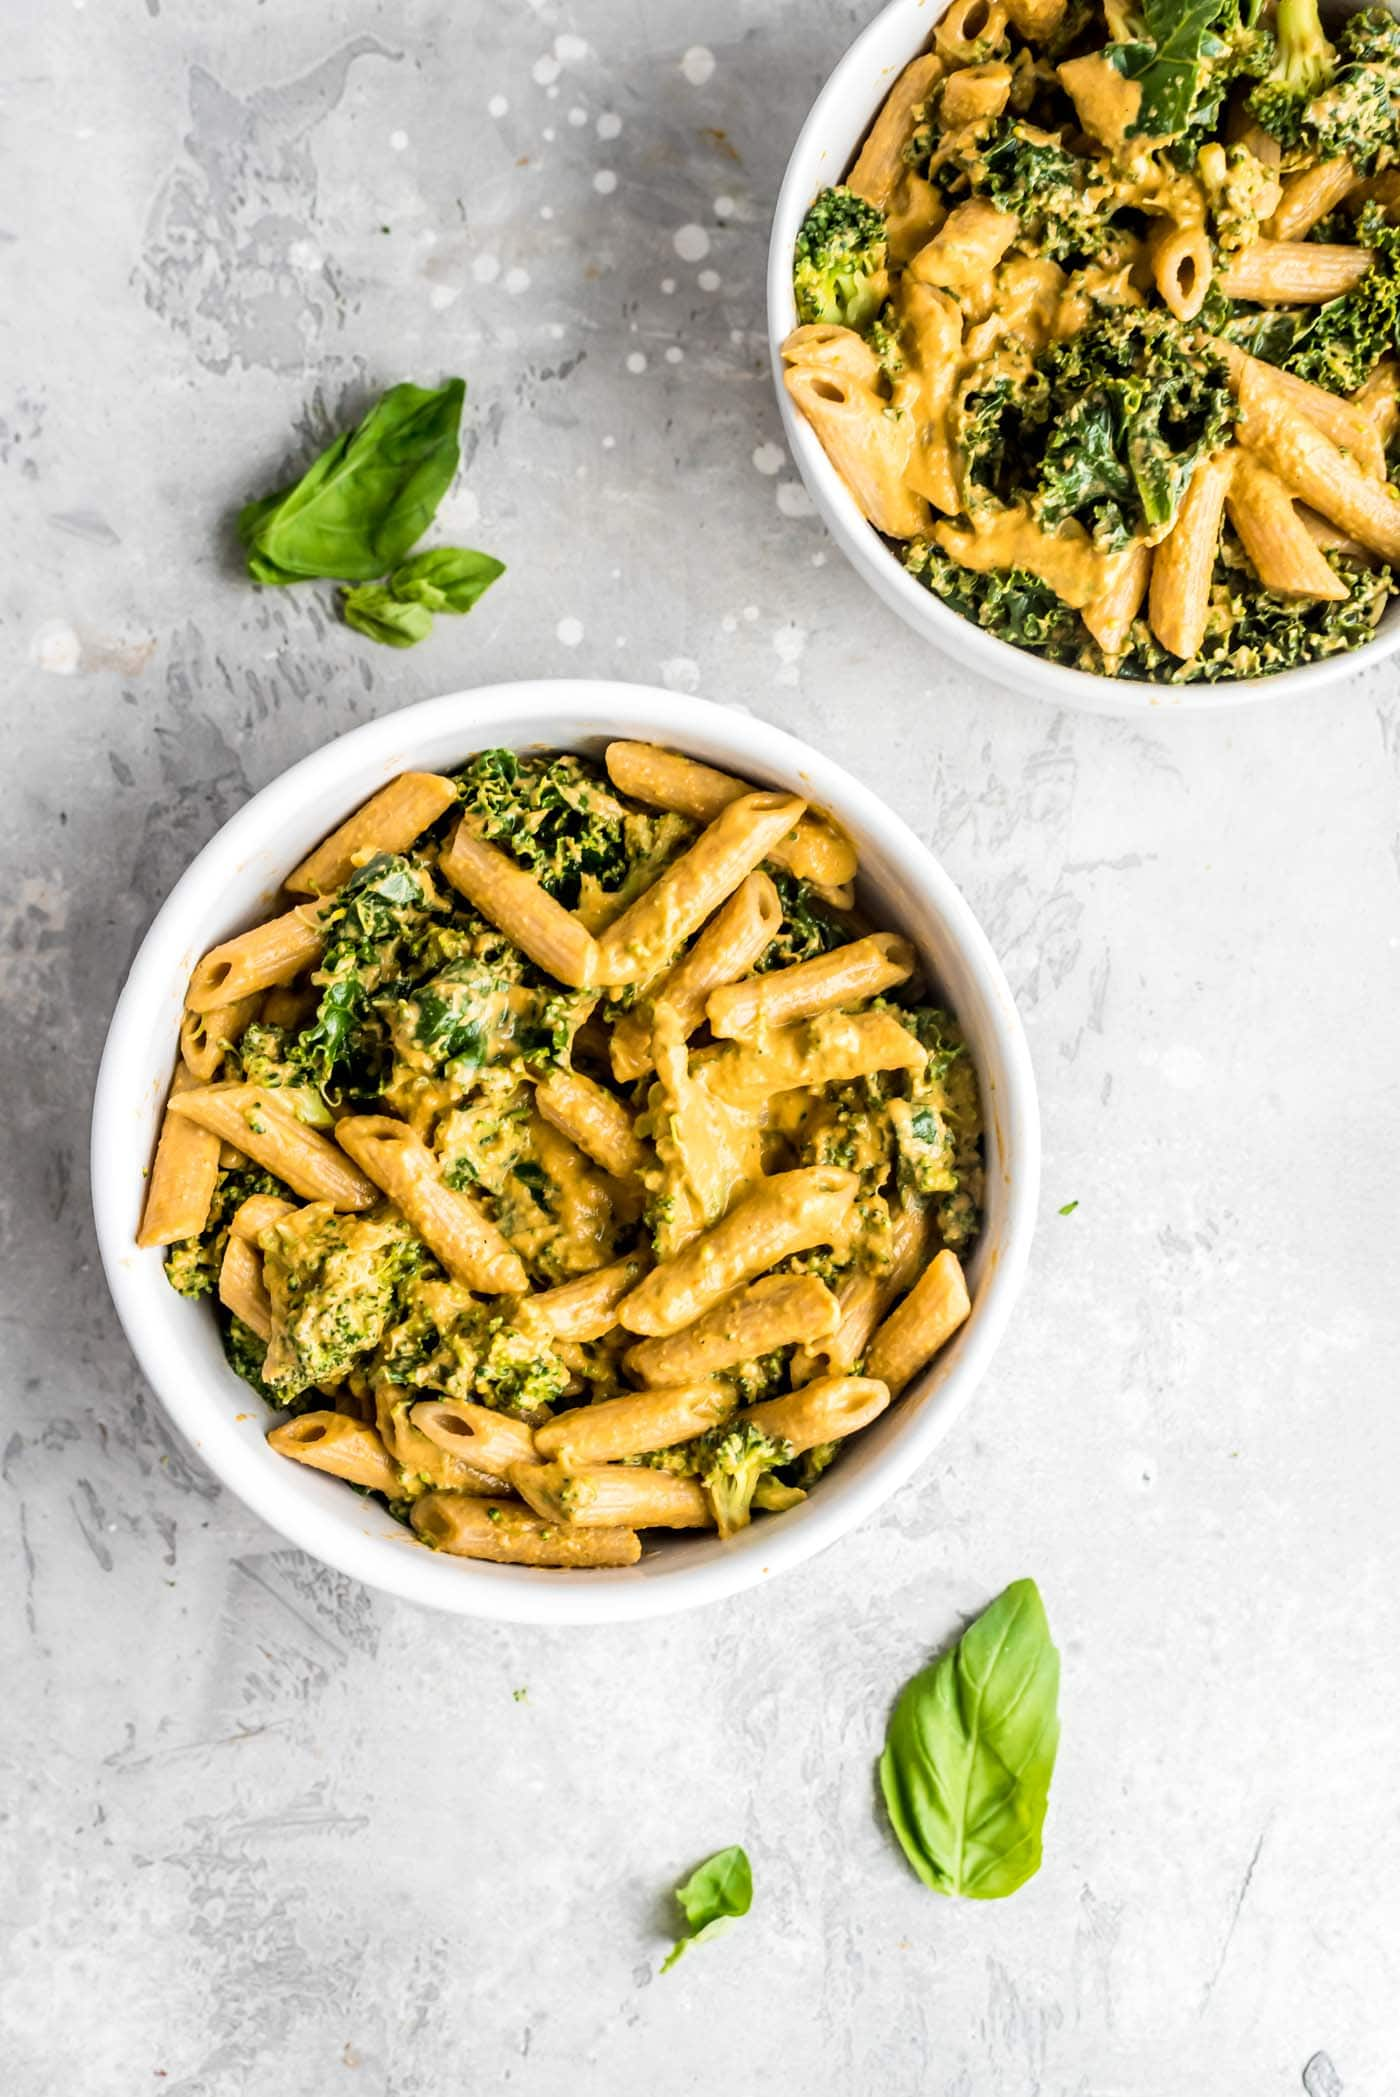 Creamy Healthy Vegan Roasted Red Pepper Pesto Pasta with Kale and Broccoli